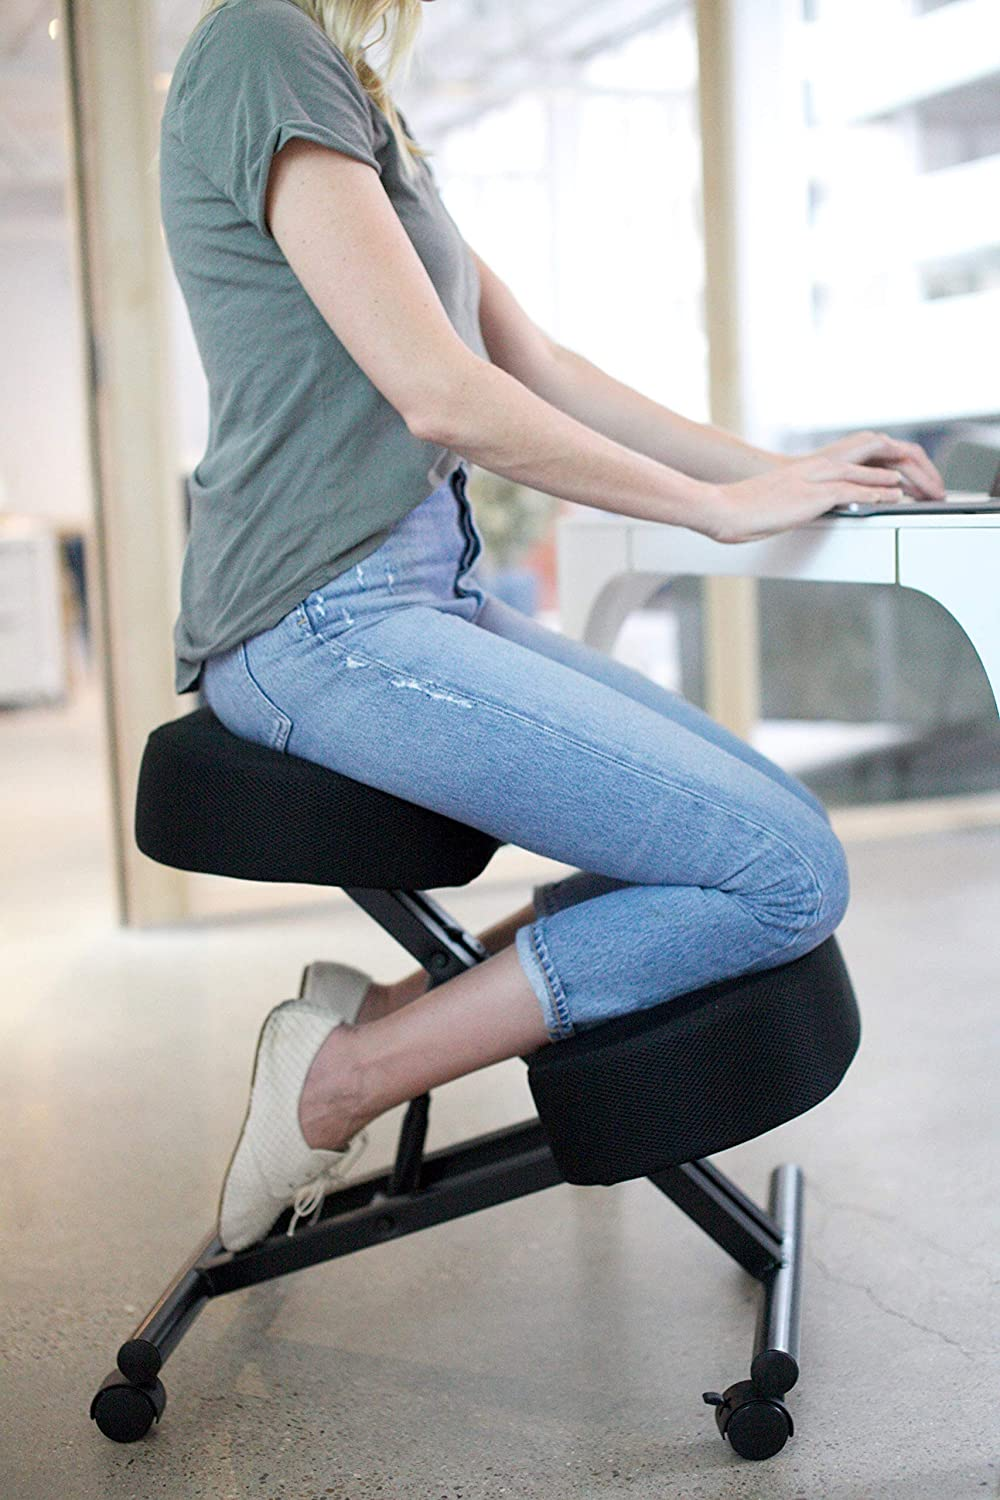 Sleekform Kneeling Posture Chair | Ergonomic Office Desk Knee Stool Relieving Back & Neck Pain | Computer Seat, Wheels & Adjustable Height | Backless Meditation Seat | 4